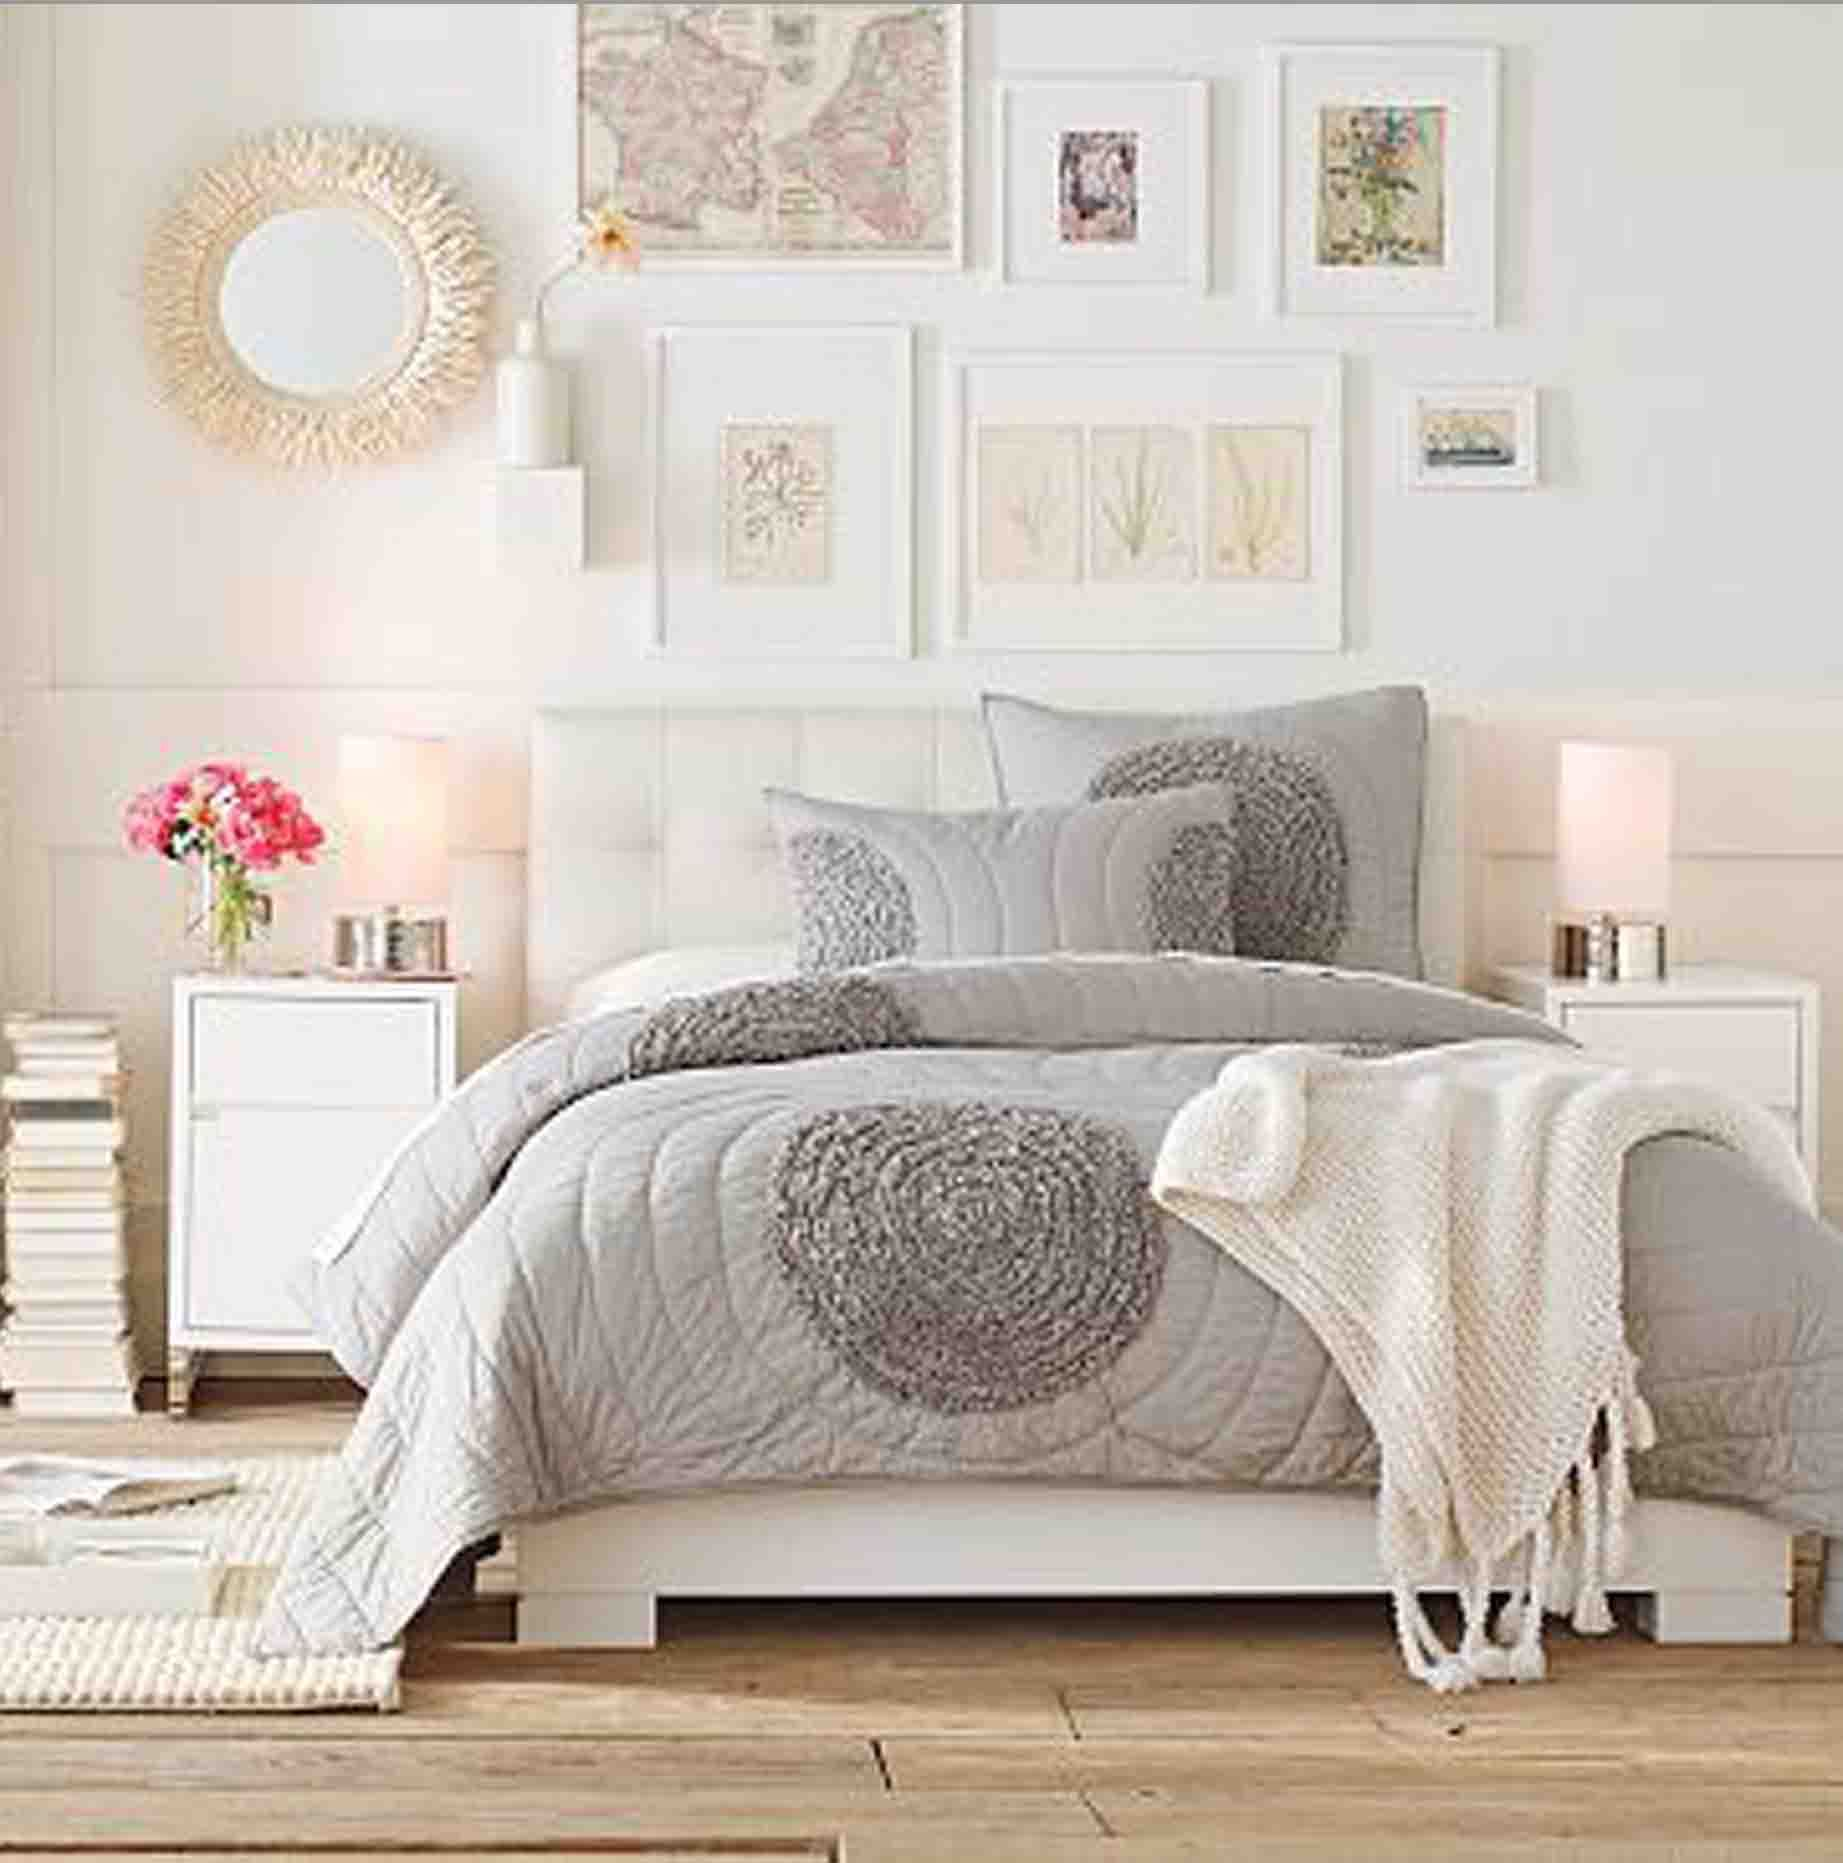 Best Light And Bright Bedroom Ideas Grey Nutral White 400 x 300